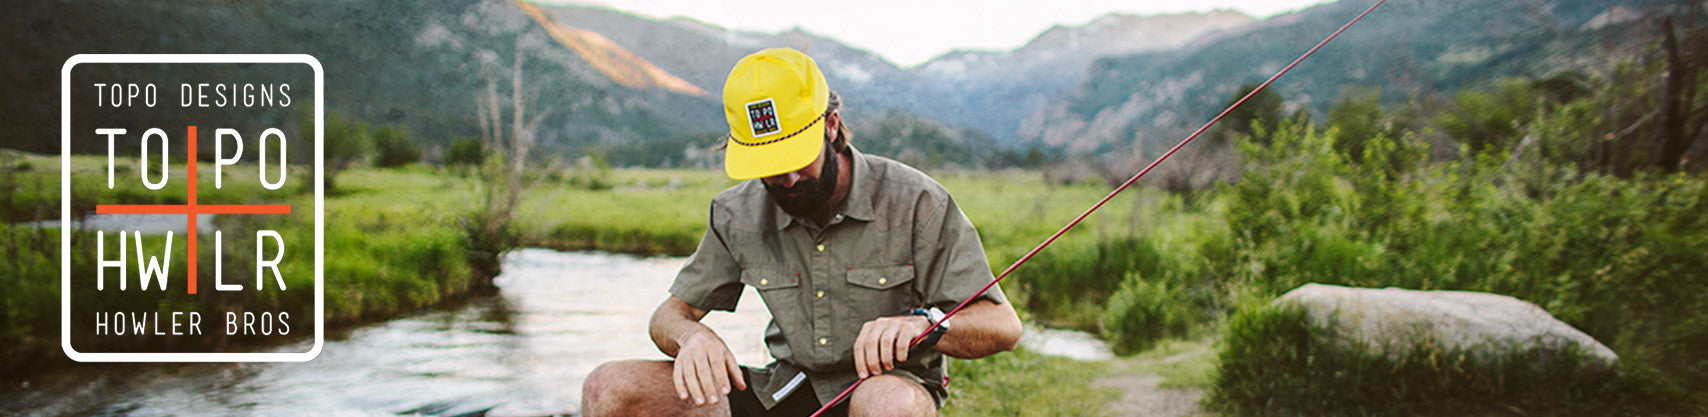 Topo Designs x Howler Brothers Collaboration